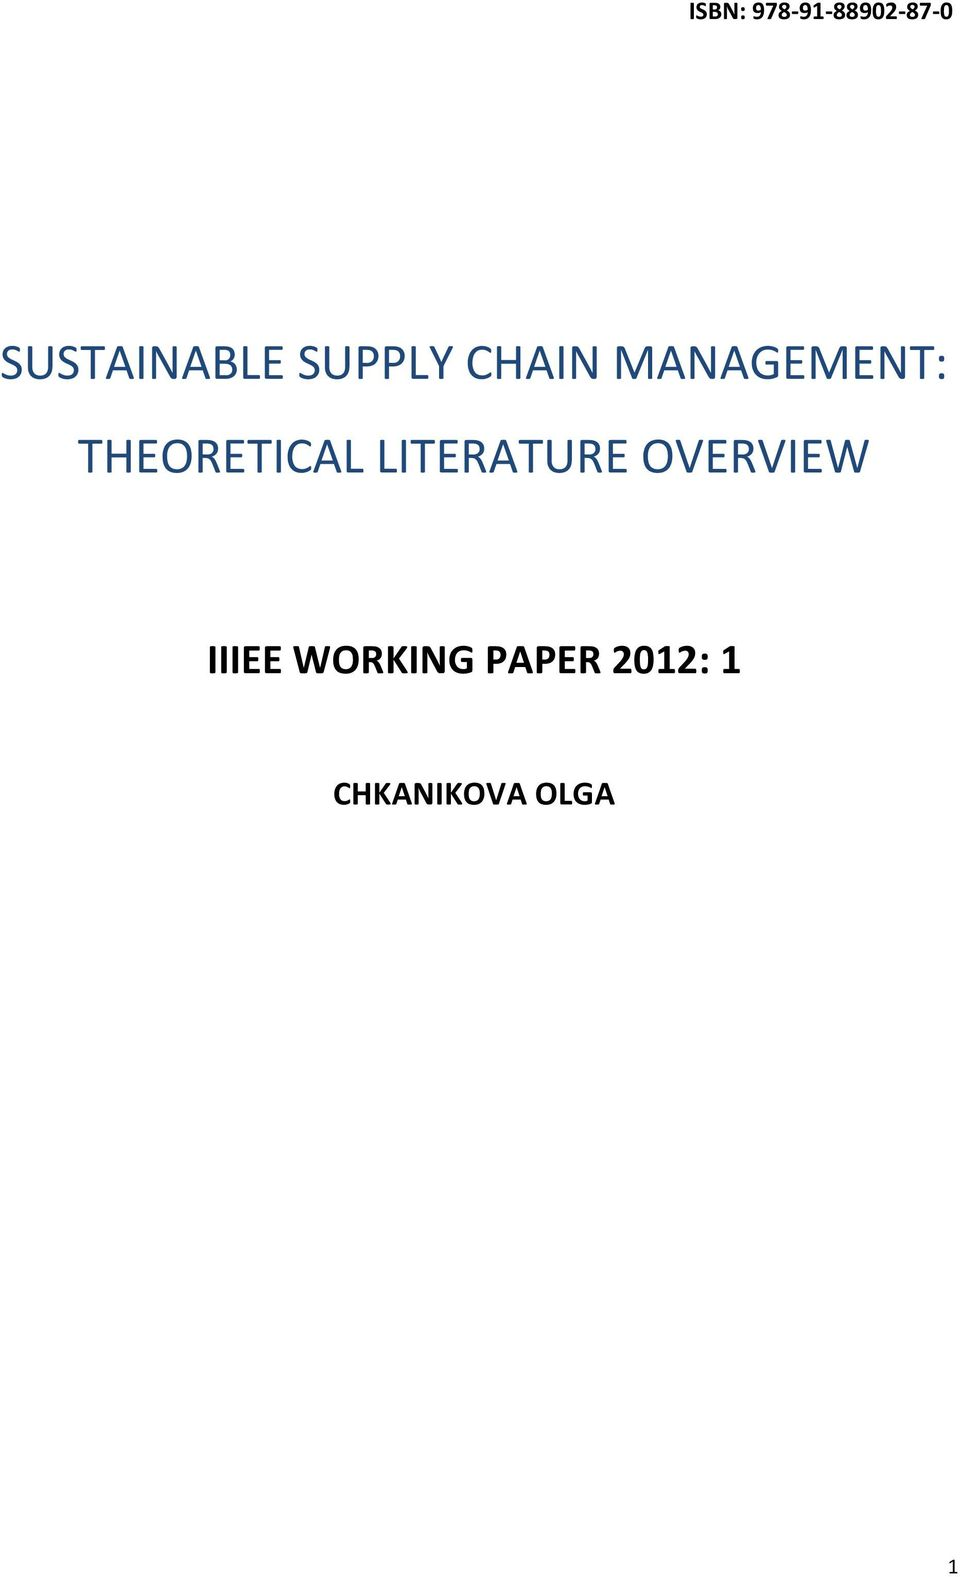 green supply chain management dissertation Dissertations, theses, and student research from the college of business business, college of  table 21 categories of green supply chain management from literature (zhu and sarkis, 2004)  brown et al (2001) suggests two main types of green supply management process: greening the supply process and product-based green supply greening.